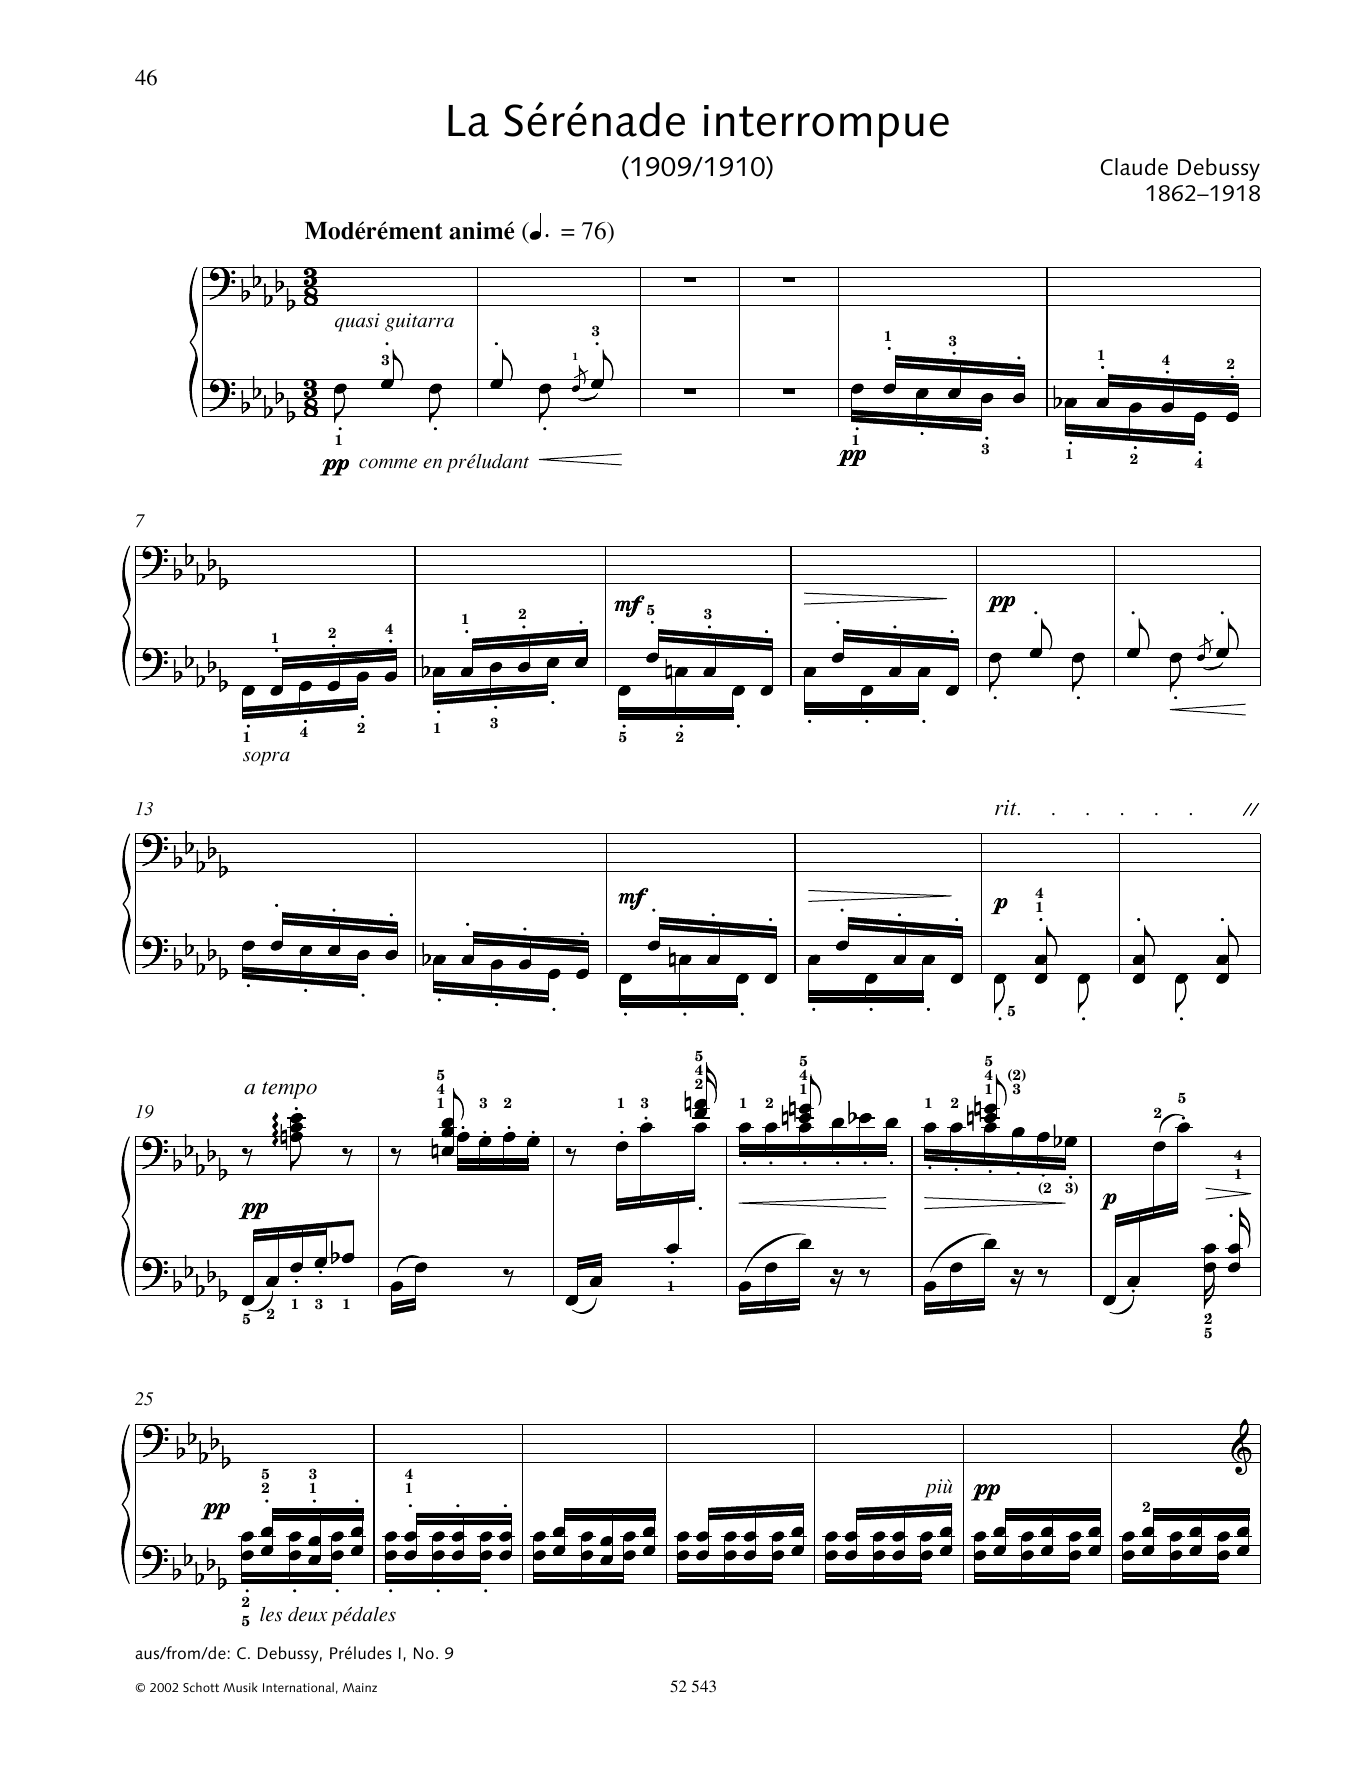 La Serenade Interrompue Sheet Music